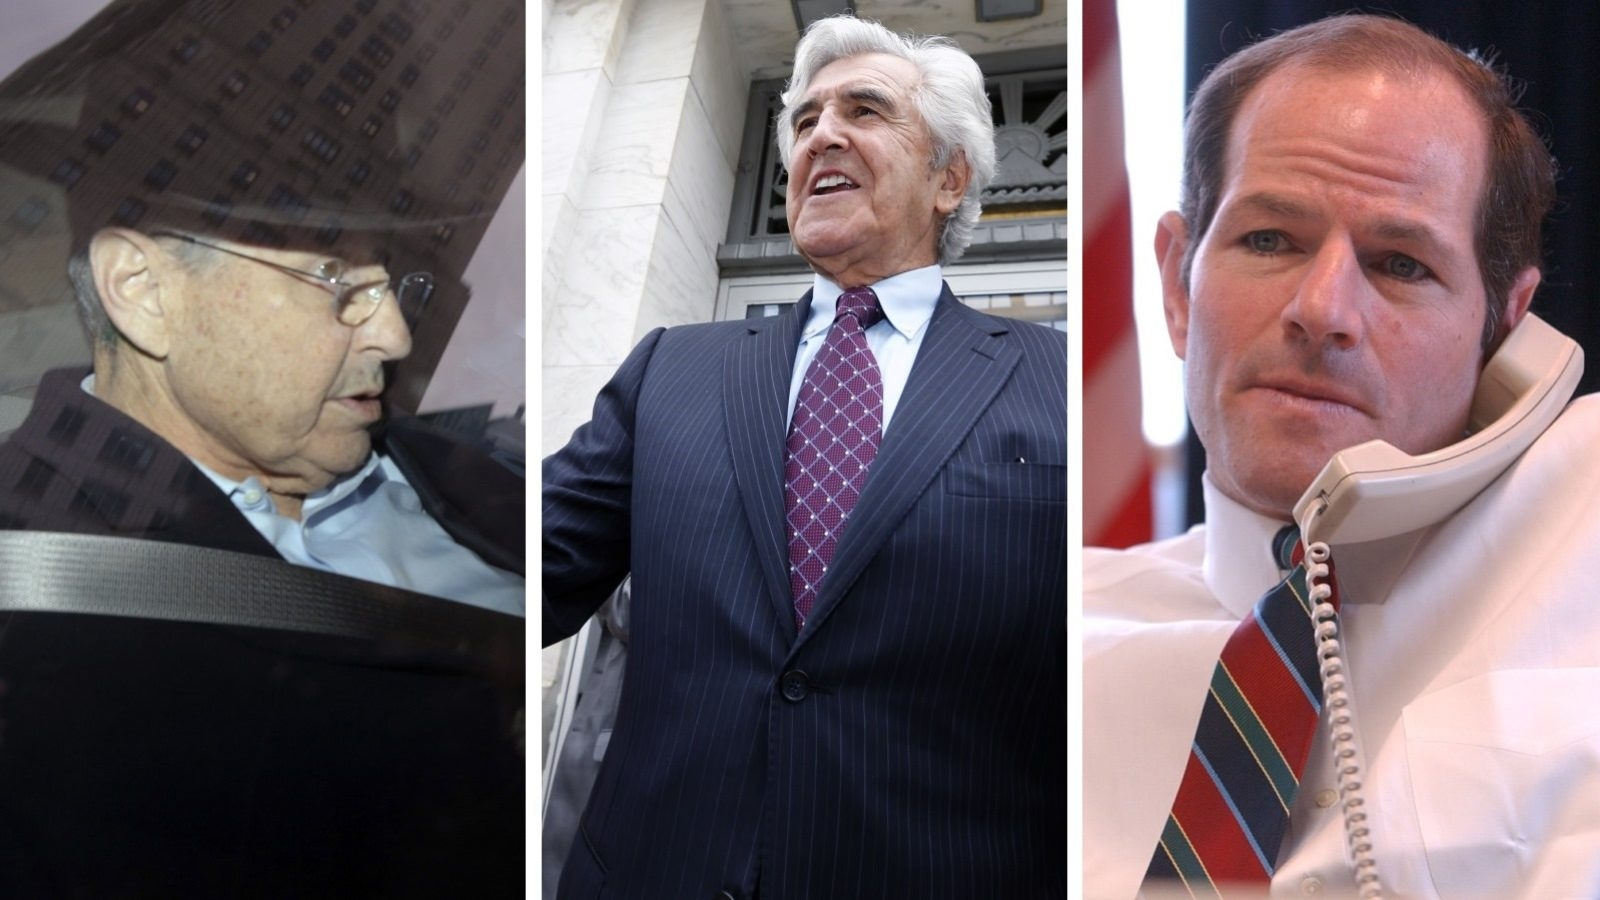 Hit by scandal have been, from left, Sheldon Silver, Joseph L. Bruno and Eliot L. Spitzer.